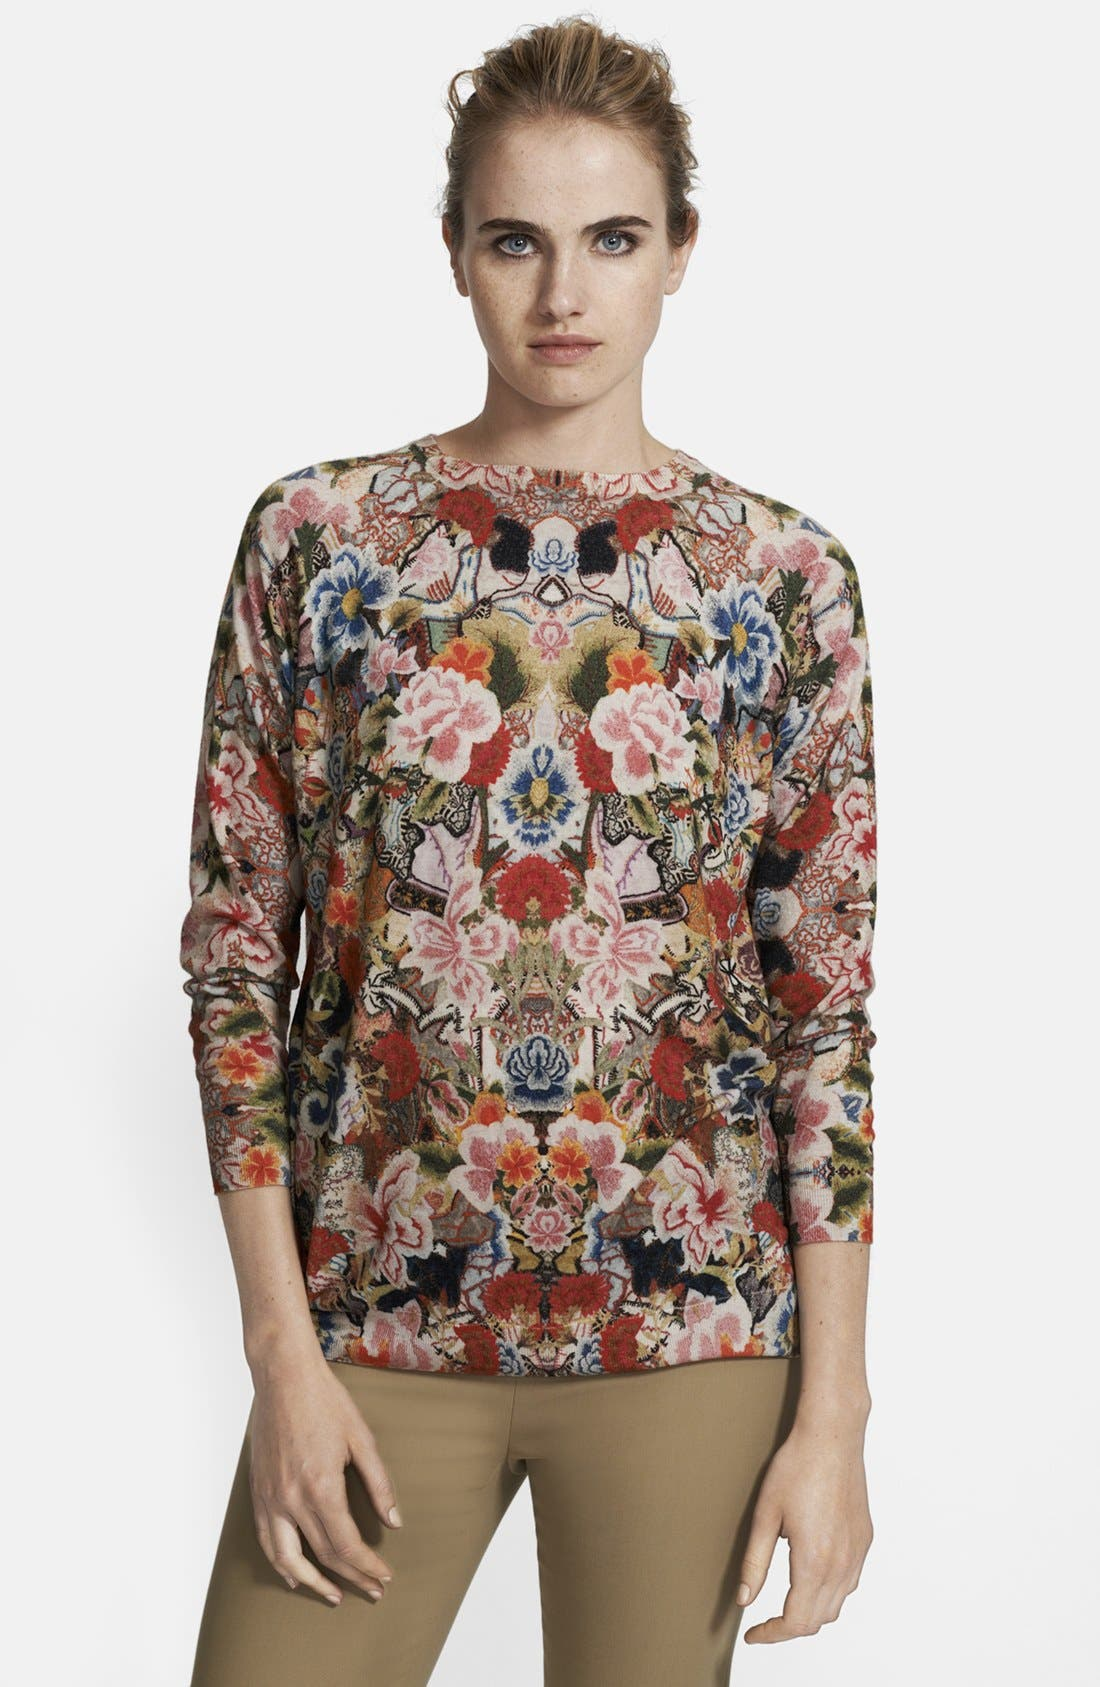 Alternate Image 1 Selected - Alexander McQueen Patchwork Floral Print Sweater